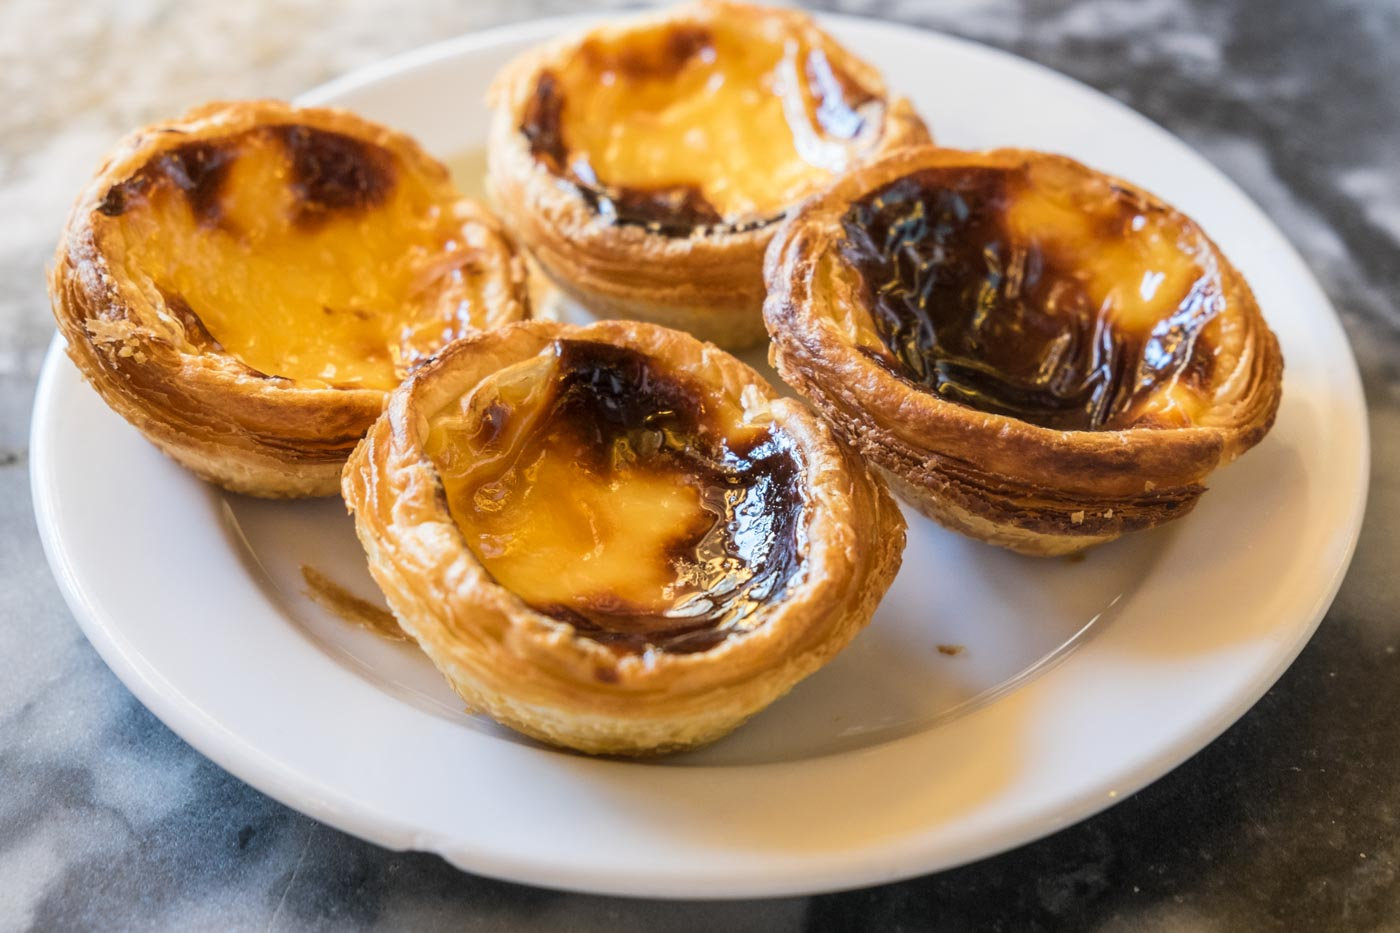 Portuguese cuisine from bacalhau to piri piri to francesinha for Authentic portuguese cuisine